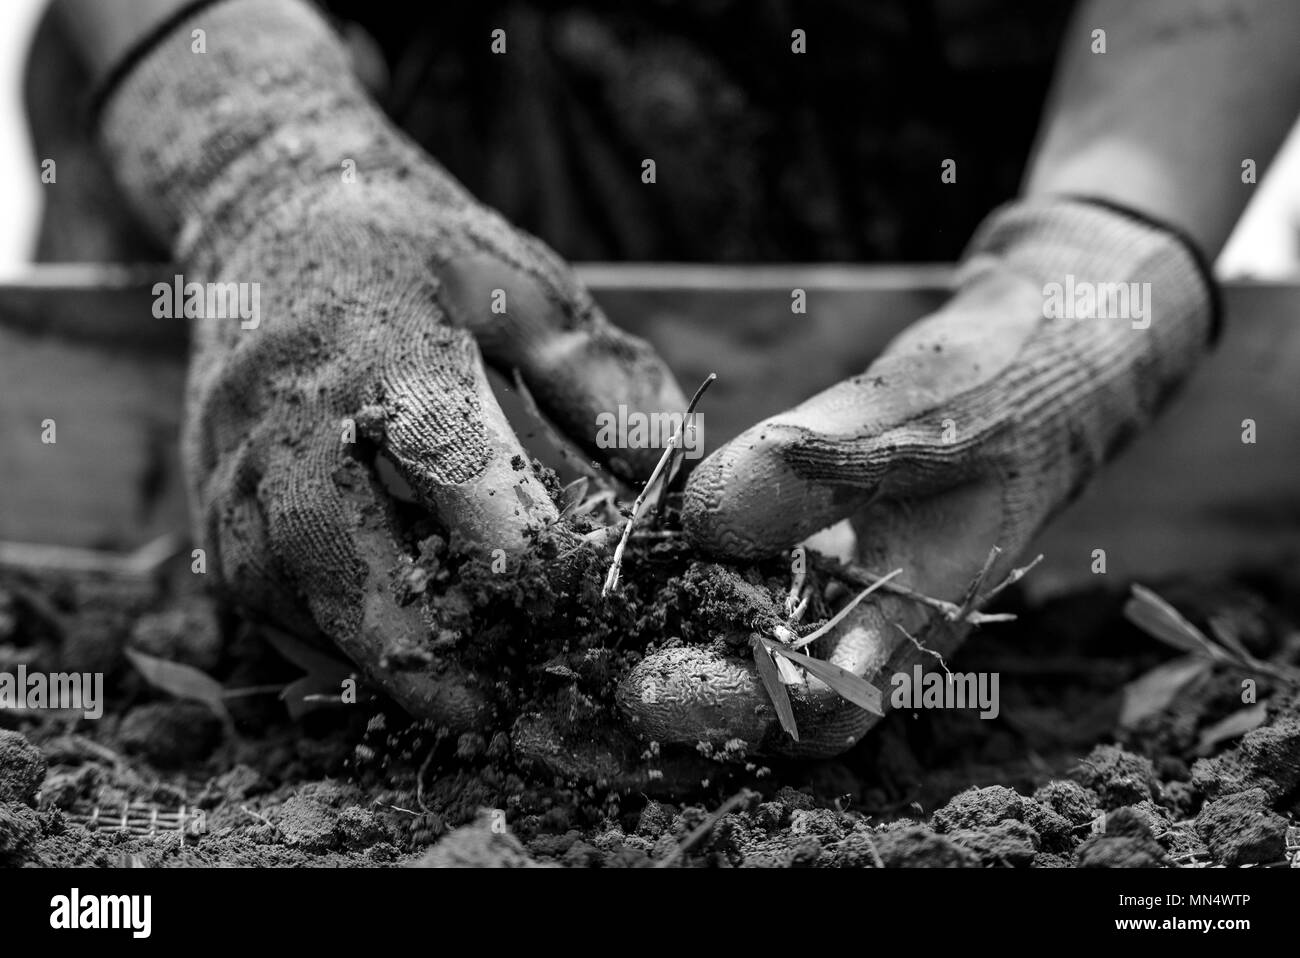 A local worker breaks up large clumps of dirt before pushing it through the dry screening platform as they search for material evidence at a dig site in Quang Binh Province, Vietnam, Aug. 20, 2017. Defense POW/MIA Accounting Agency (DPAA) team members deployed to the area in hopes of locating U.S. service members who went missing from the Vietnam War. The mission of DPAA is to provide the fullest possible accounting for our missing personnel to their families and the nation. (U.S. Marine Corps photo by Sgt. Kelly L. Street) - Stock Image